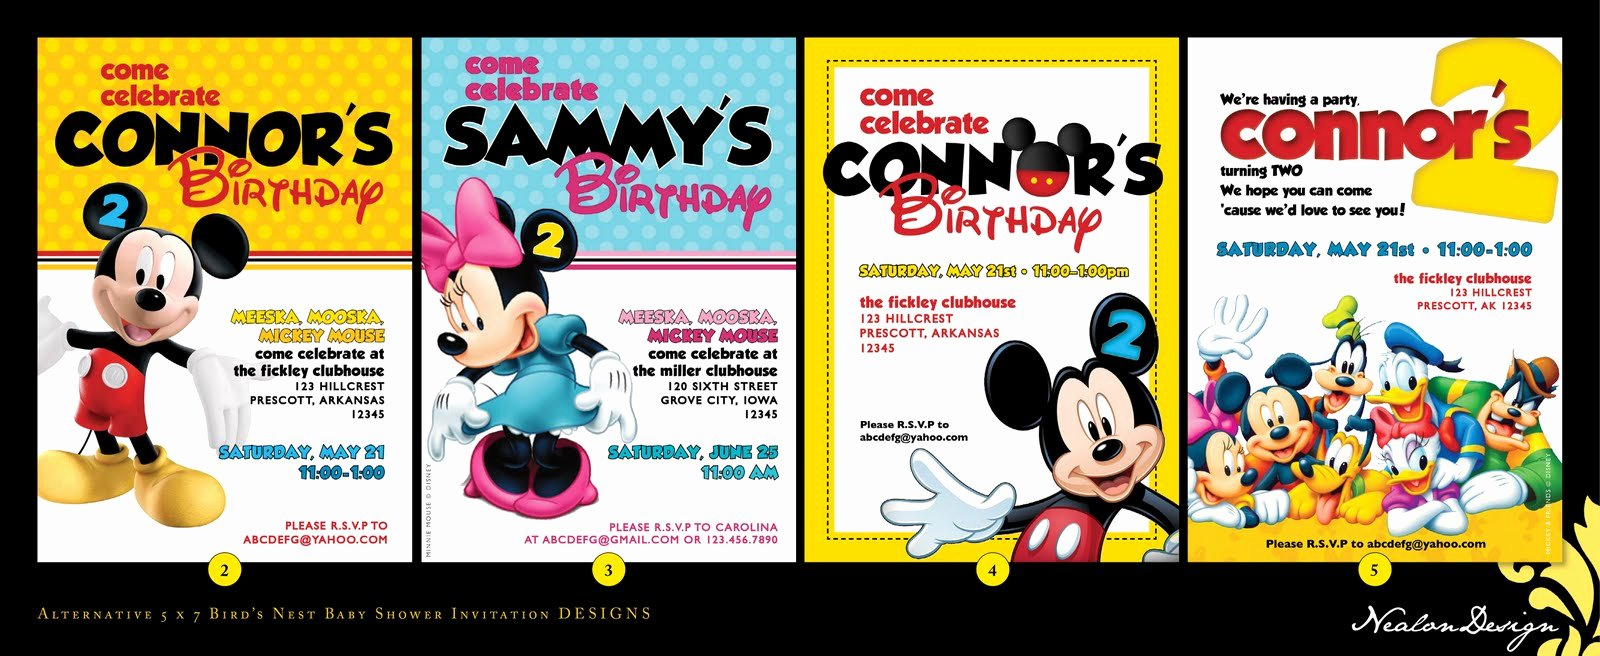 Mickey Mouse Clubhouse Invitation Fresh Nealon Design Mickey Mouse Clubhouse Birthday Invitations